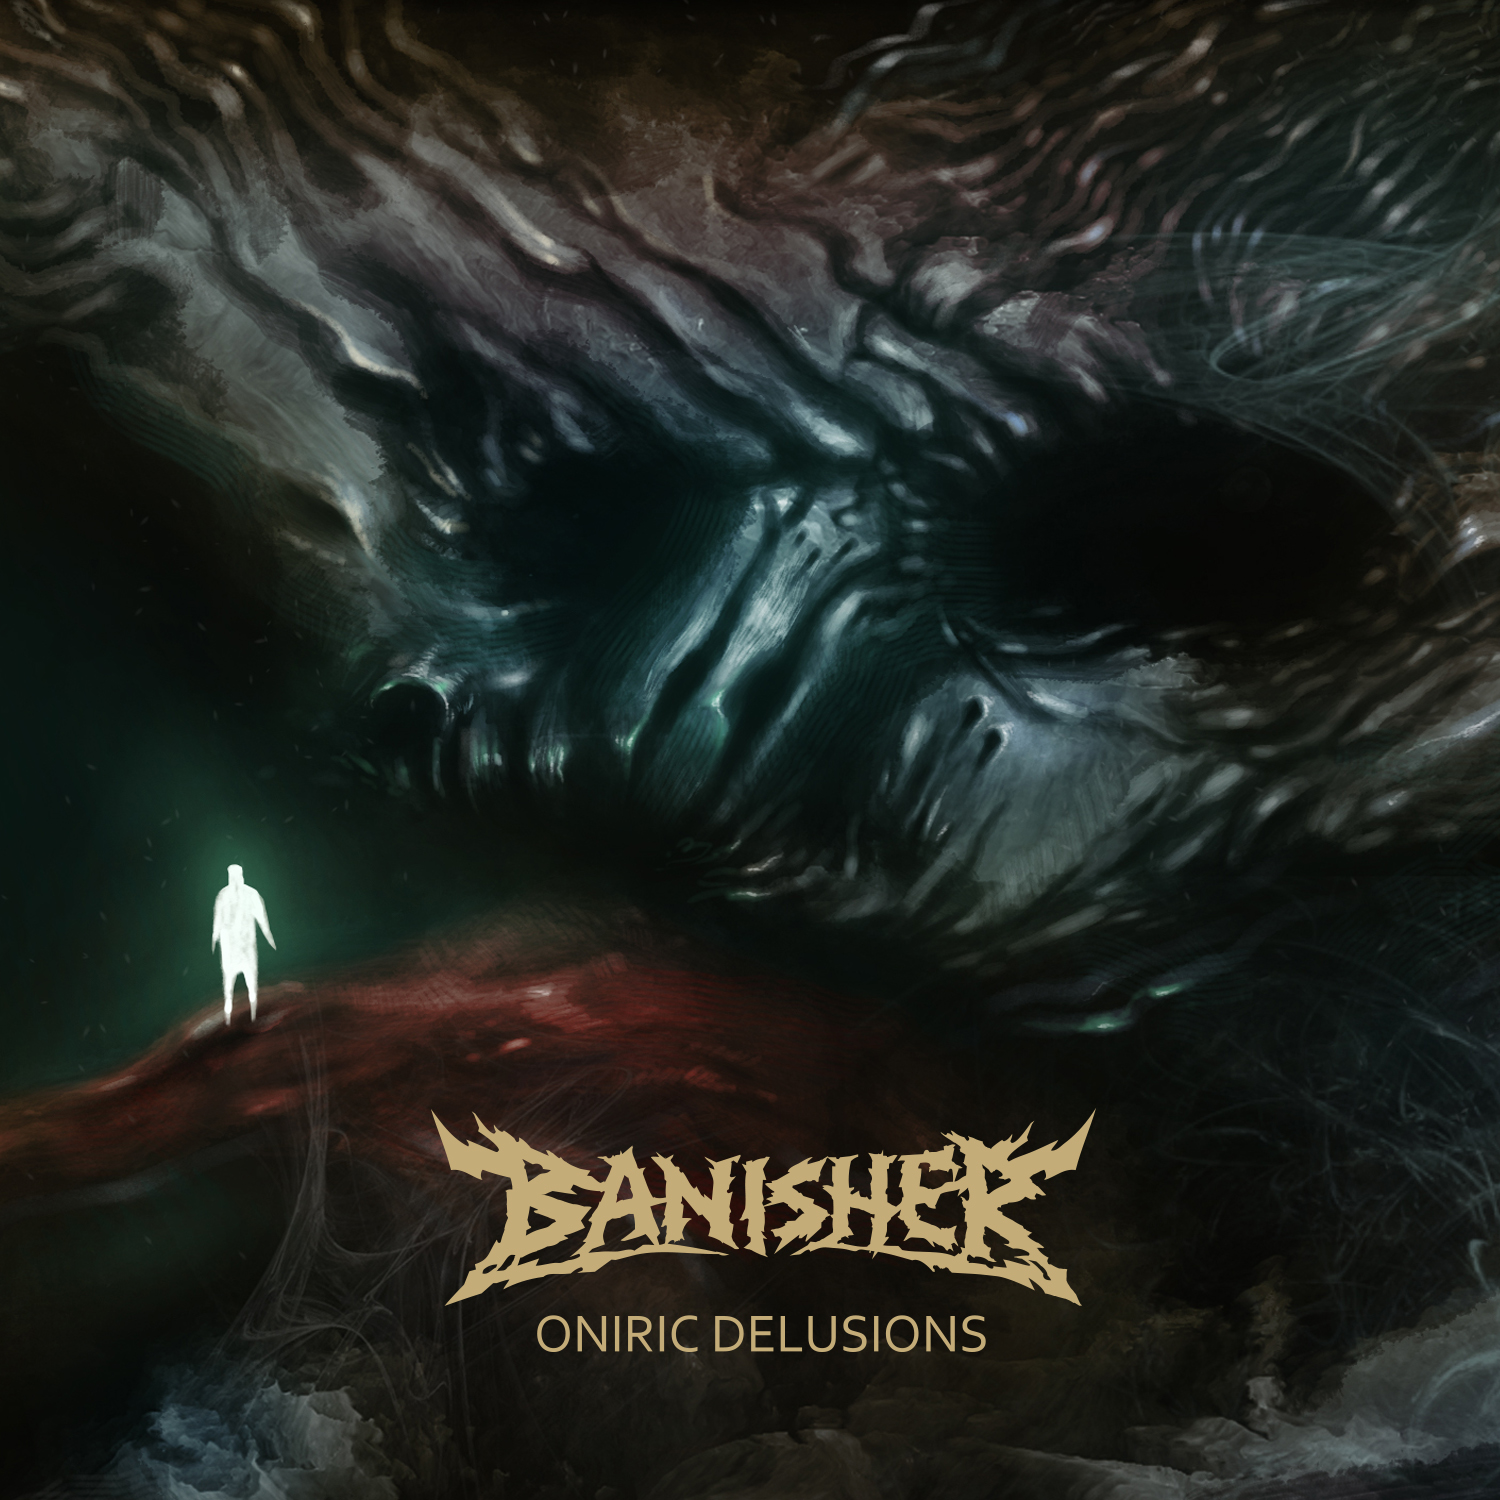 Banisher - Oniric Delusions 01